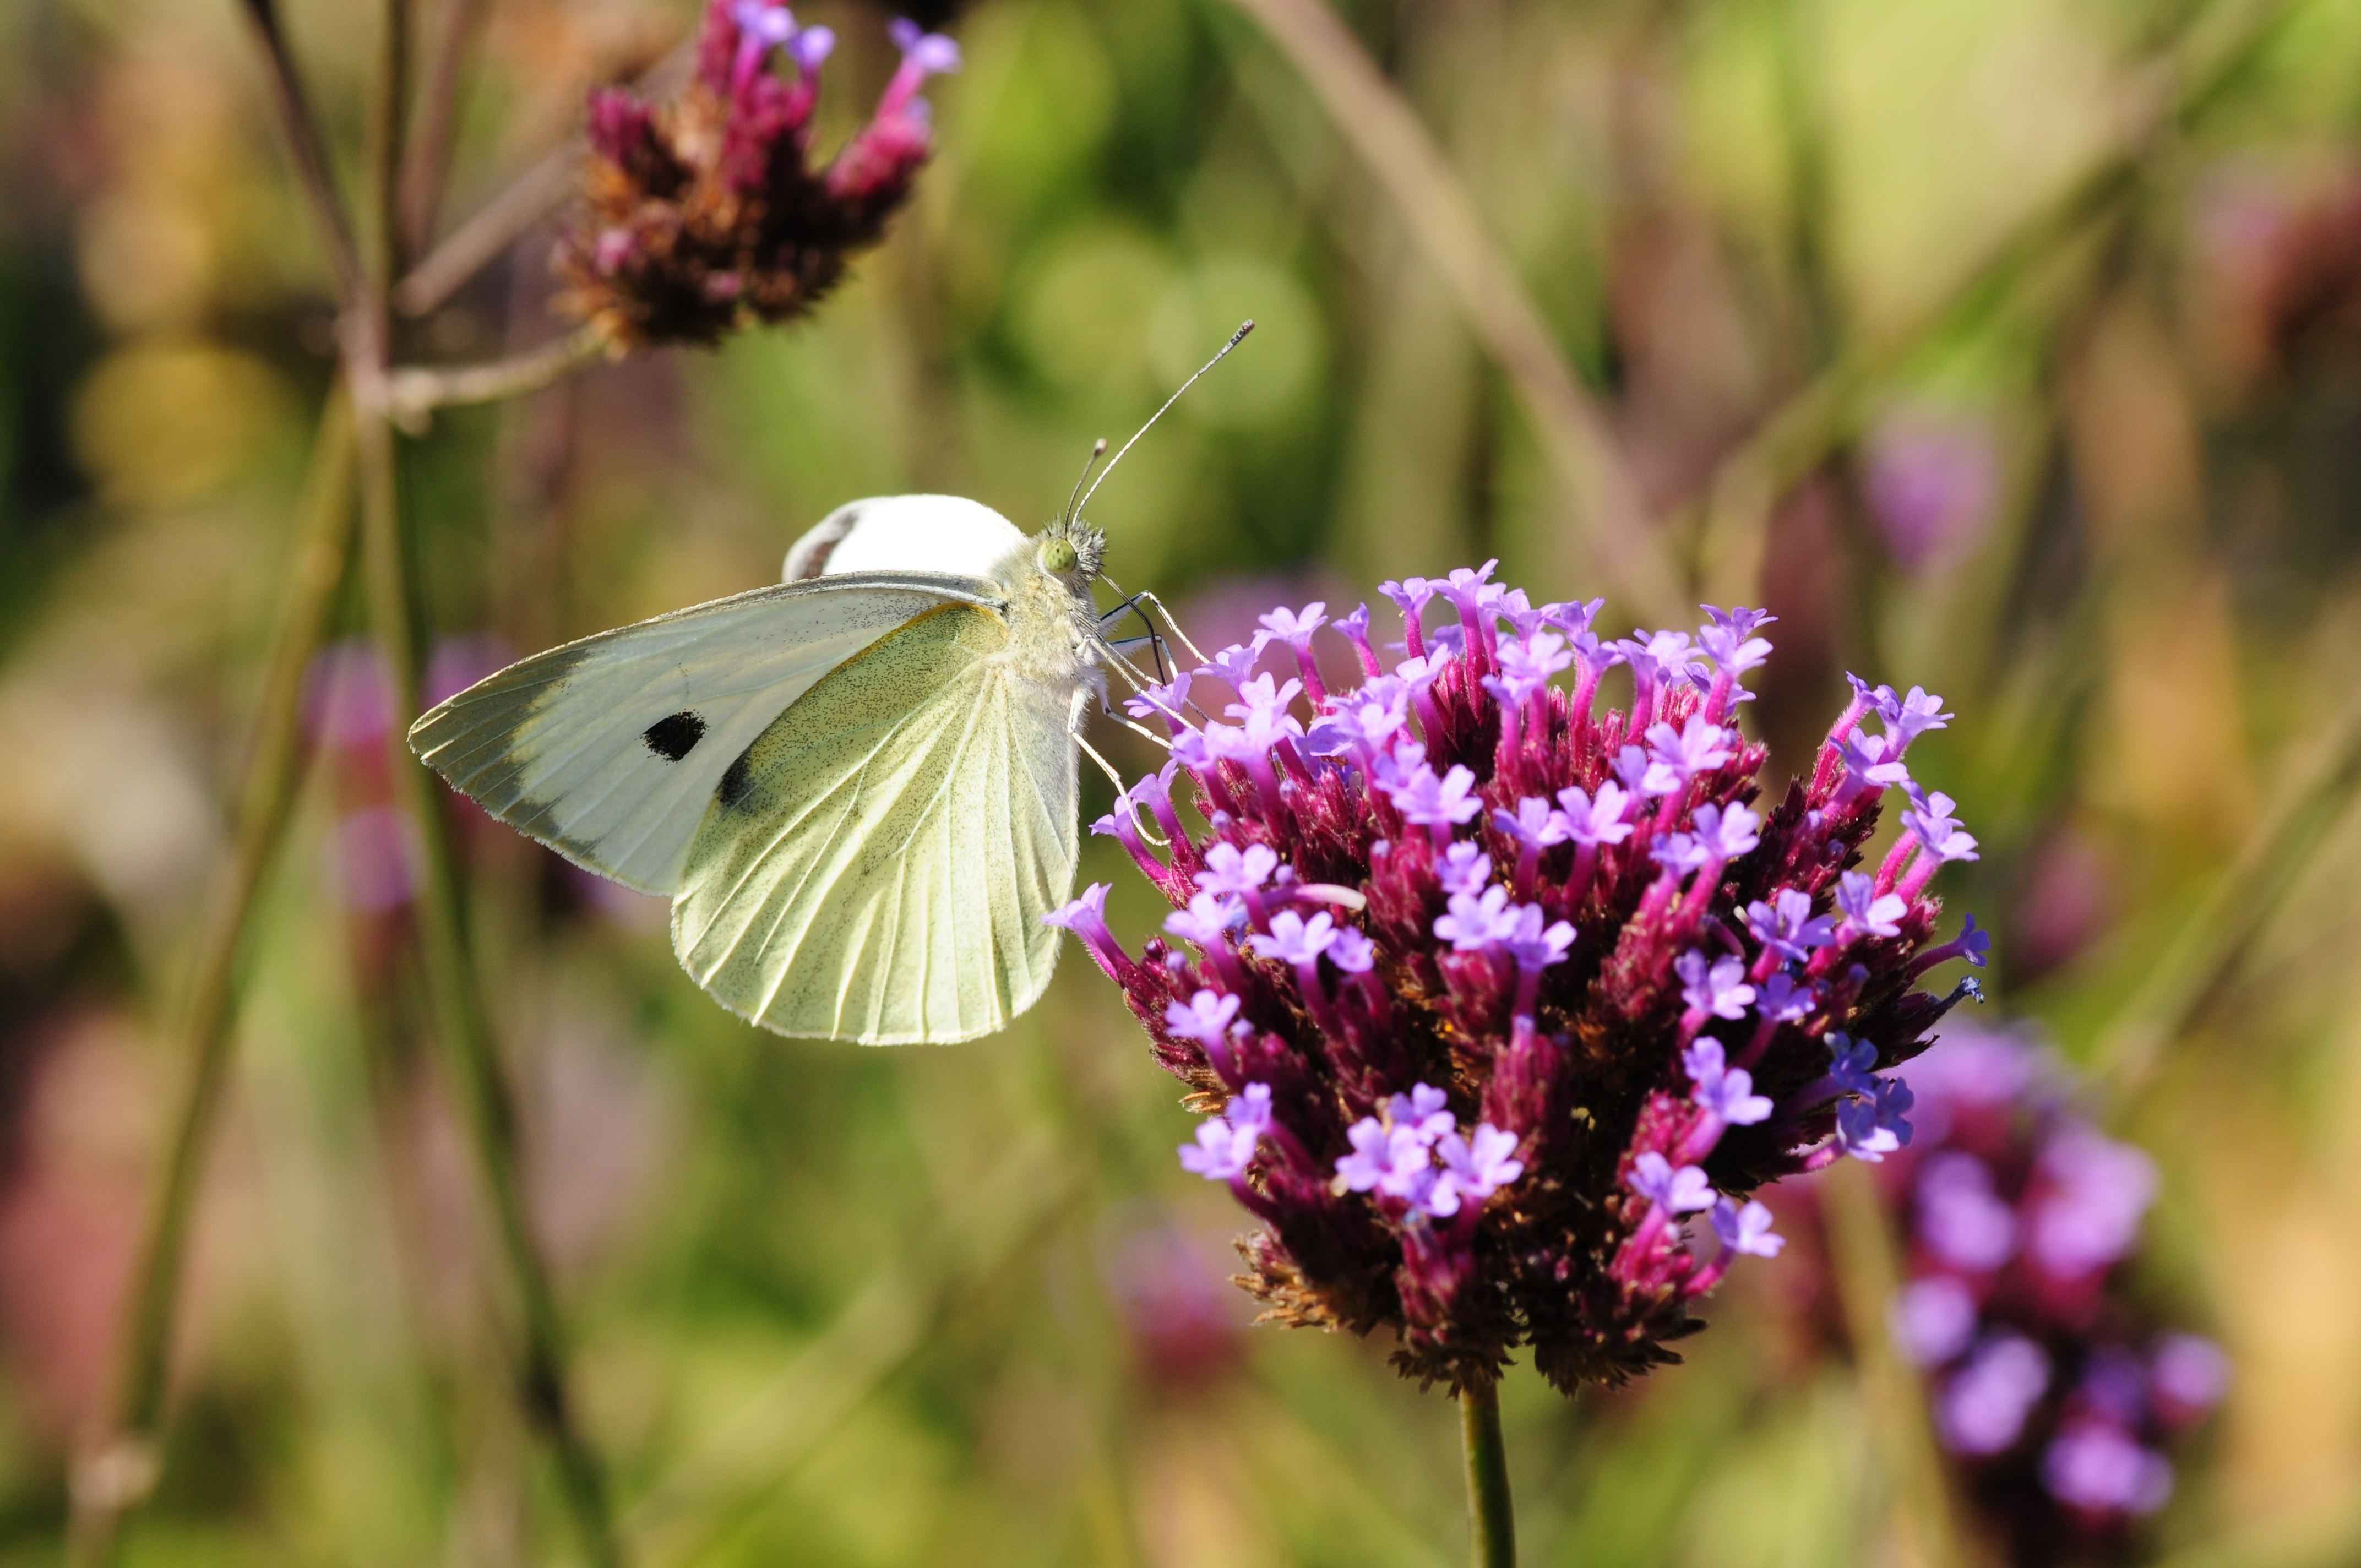 Cabbage_white_butterfly_iStock-186775314.jpg